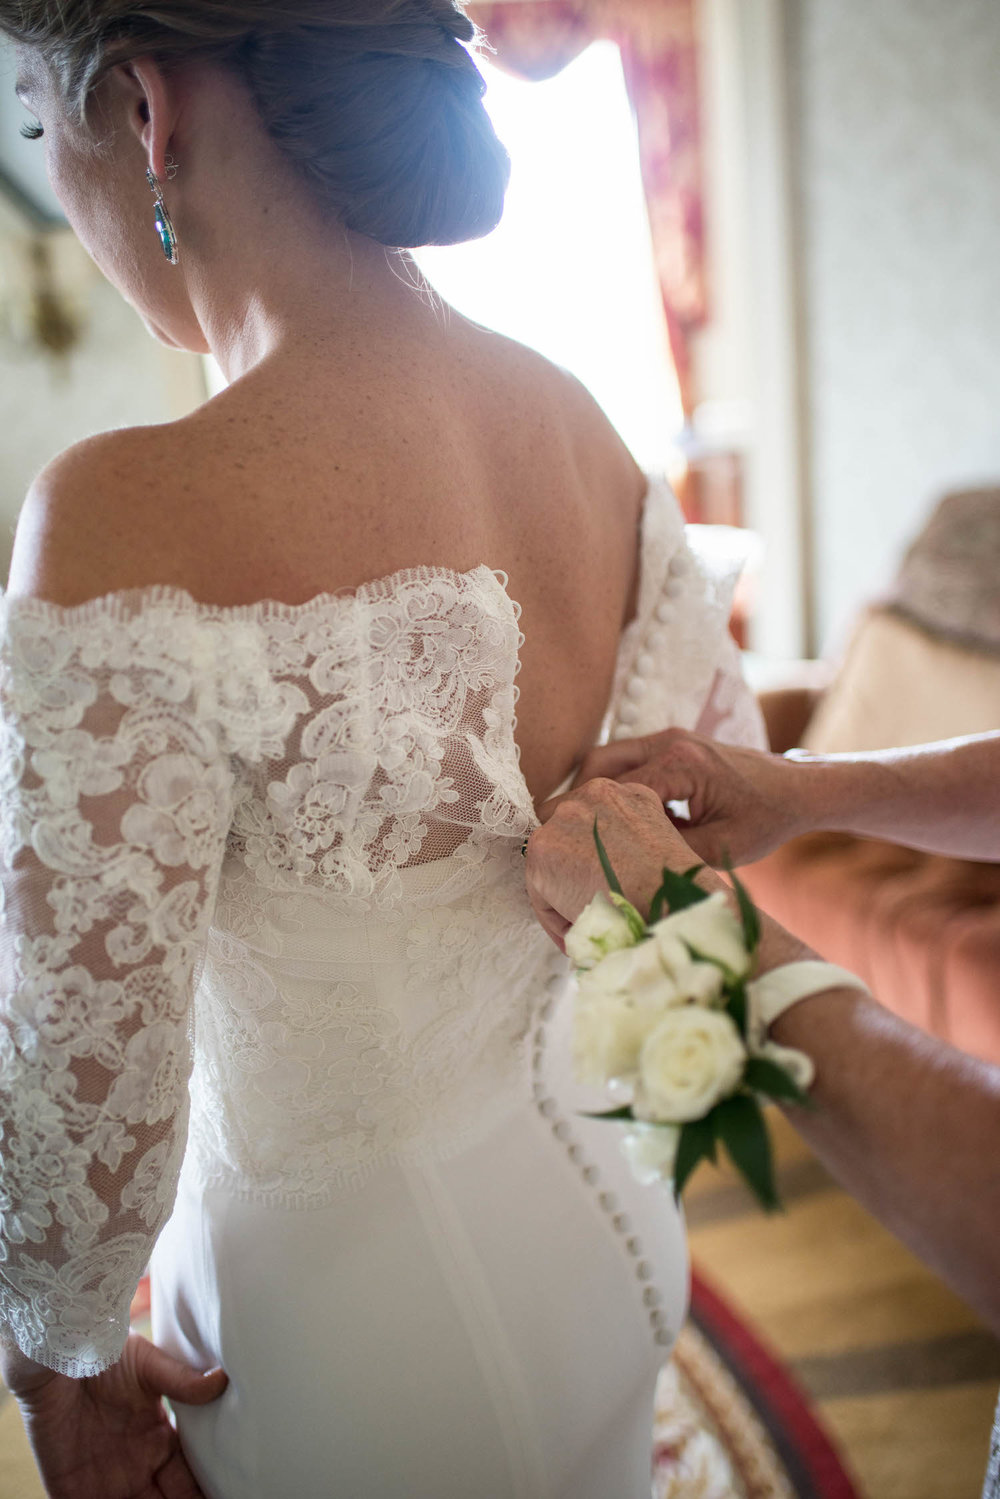 Washington DC Wedding - Sincerely Pete Events - Erin Tetterton Photography - Bride Getting Ready